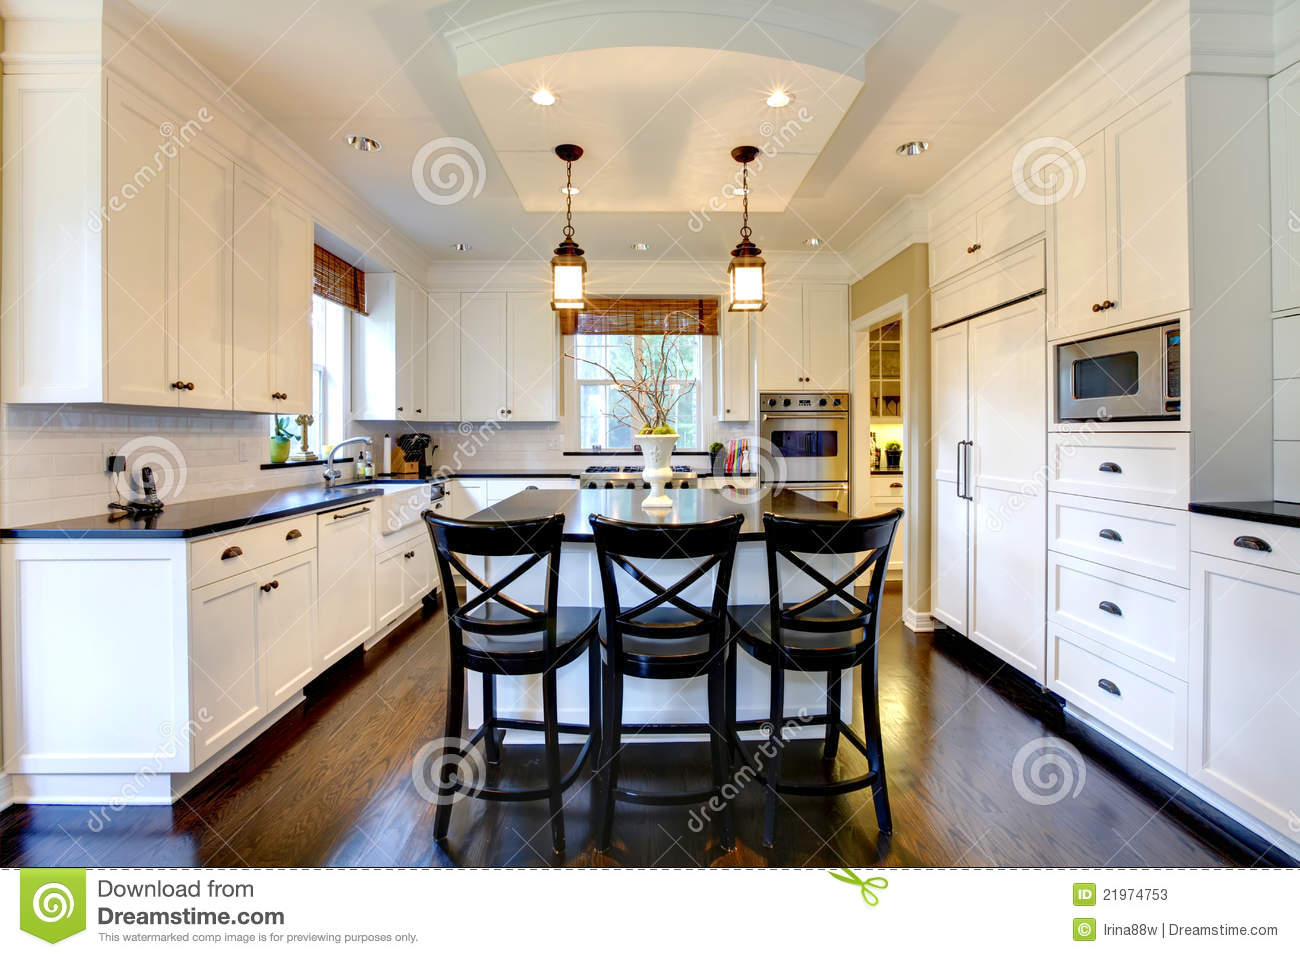 Witte Keuken Donkere Vloer : Kitchen Island with Chairs